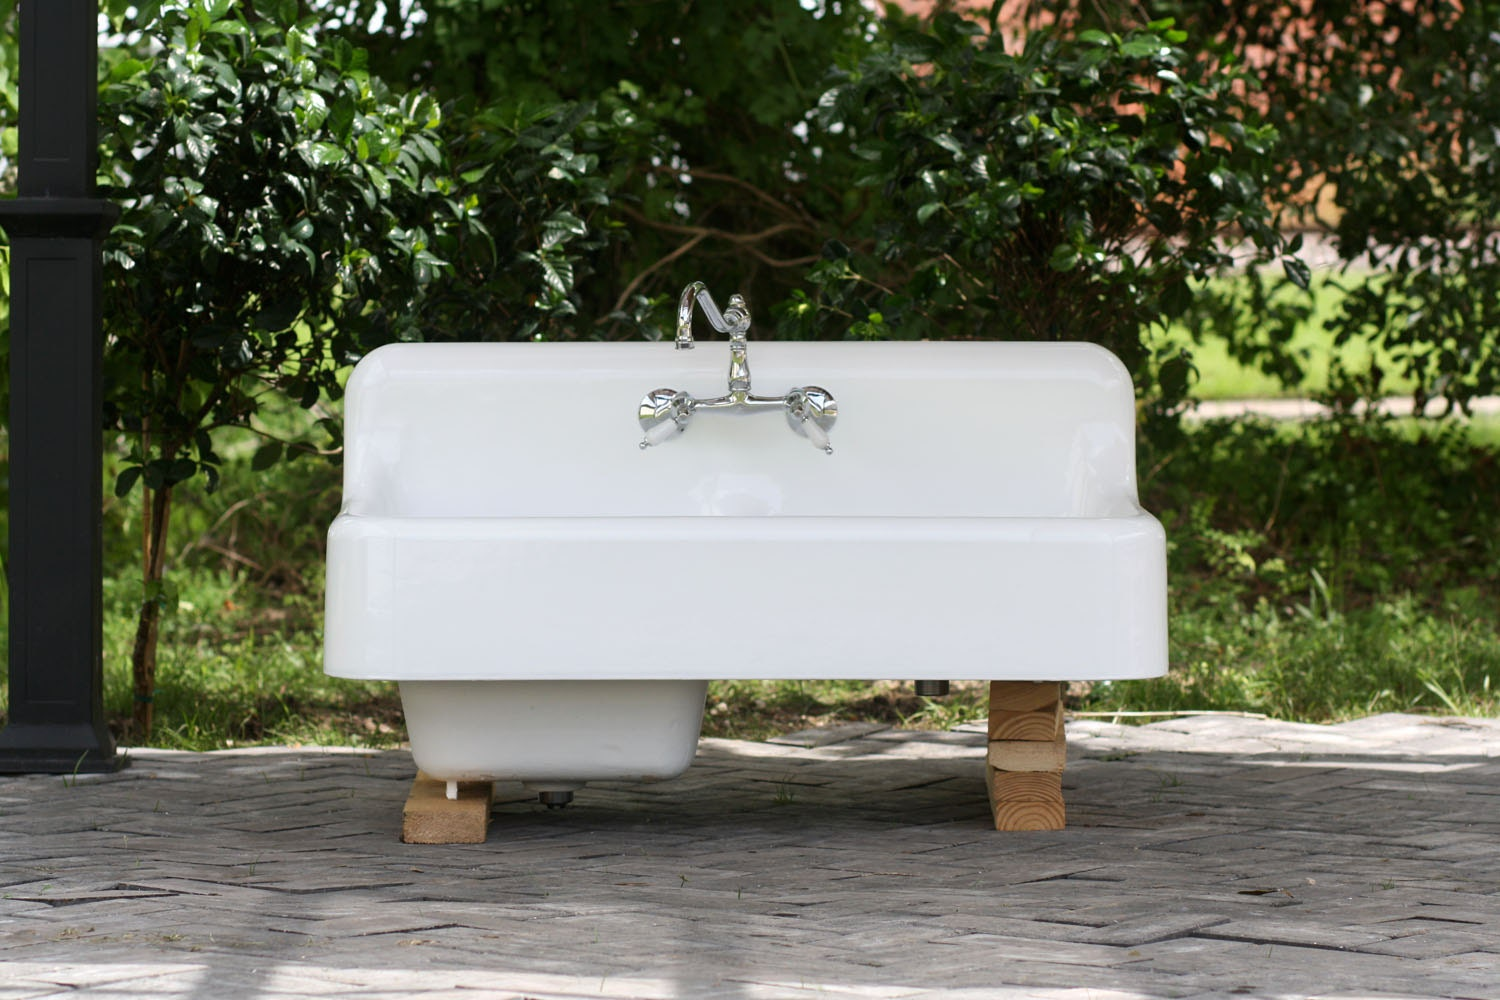 42 Refinished 1920 Cast Iron Farm Sink Porcelain by readytore